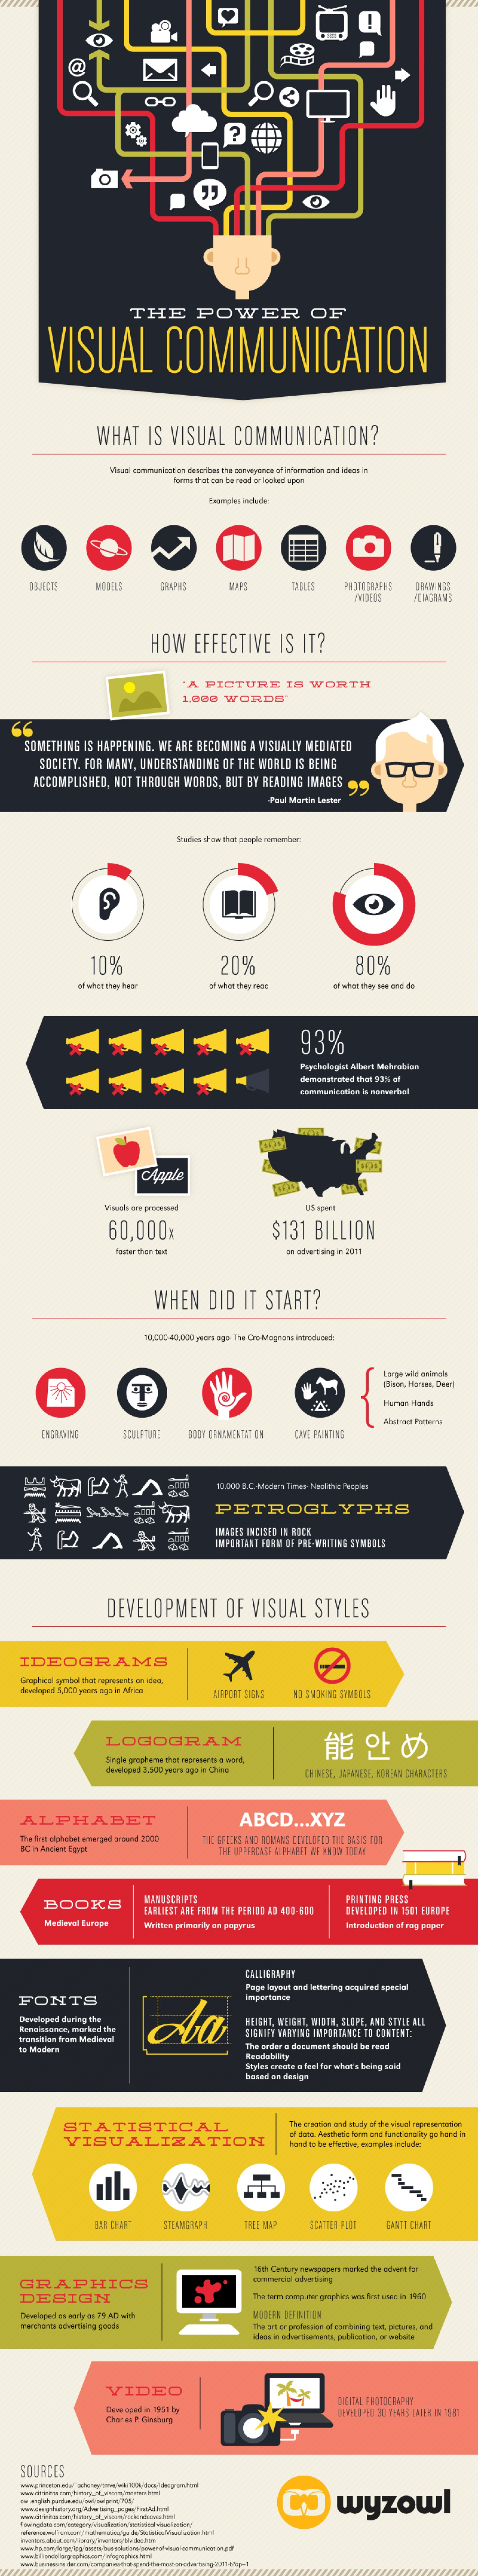 The Power of #Visual Communication [ #infografica ]